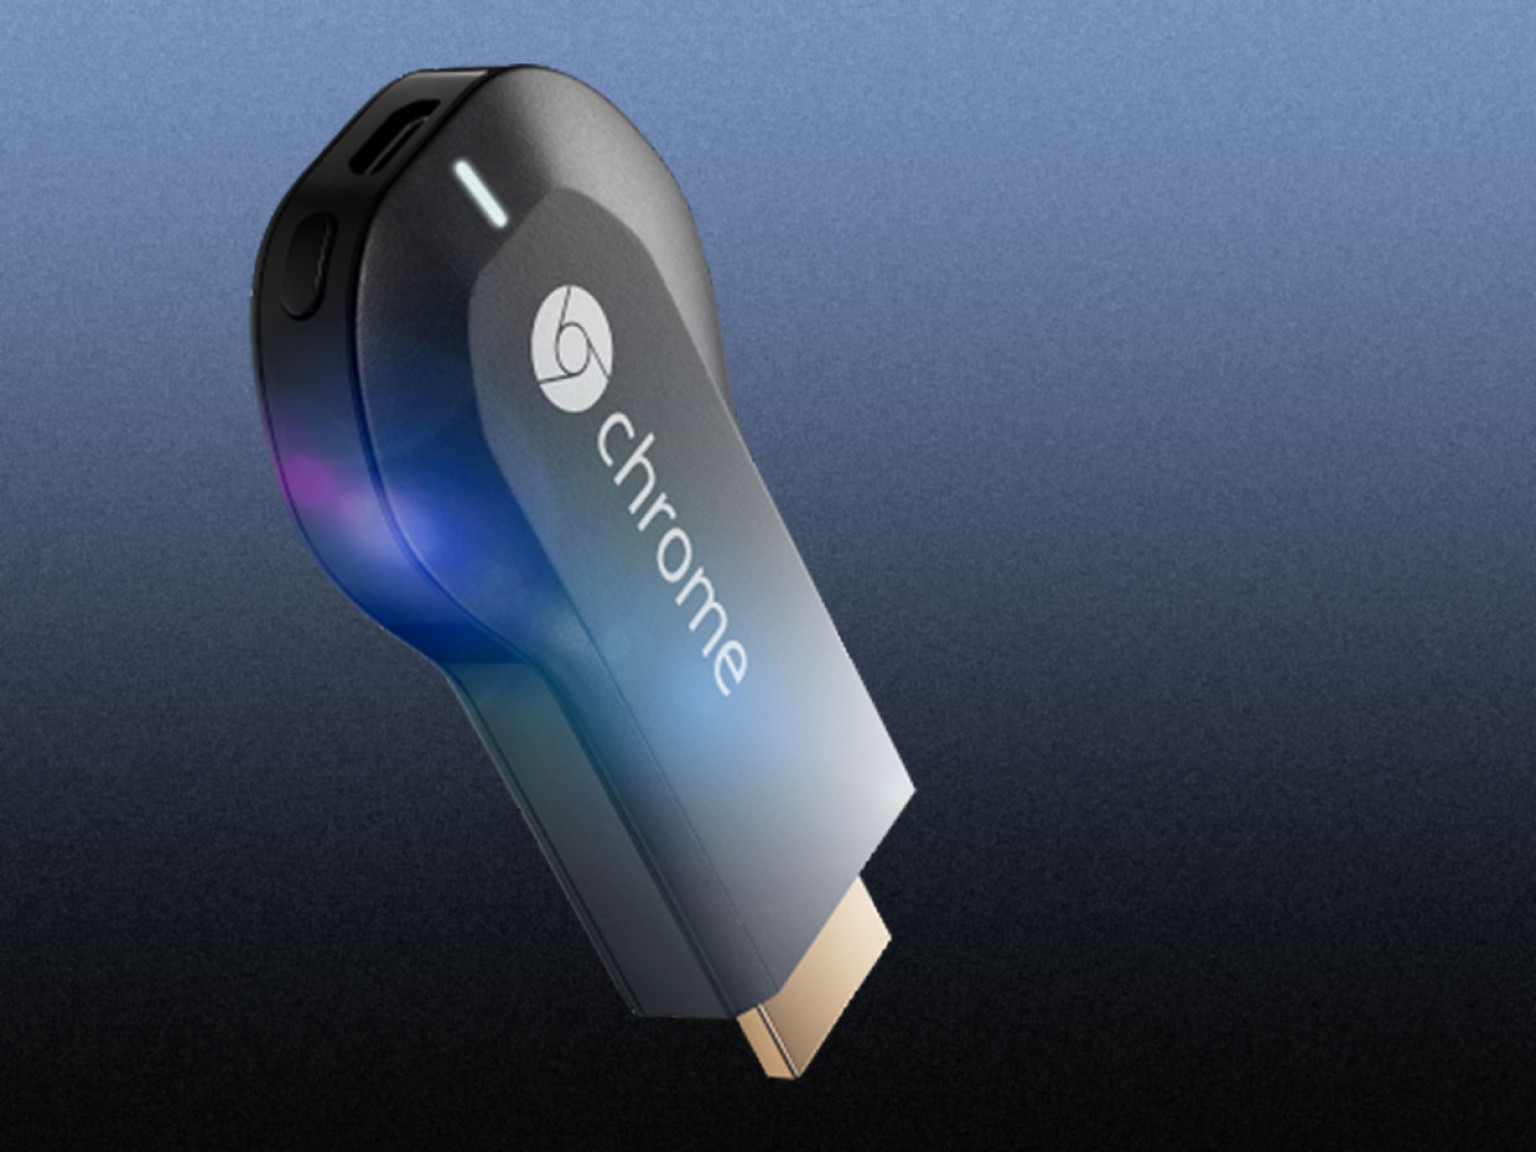 Chromecast TV Dongle Launched By Google - Is It A Viable Cheaper Alternative To Apple TV ...